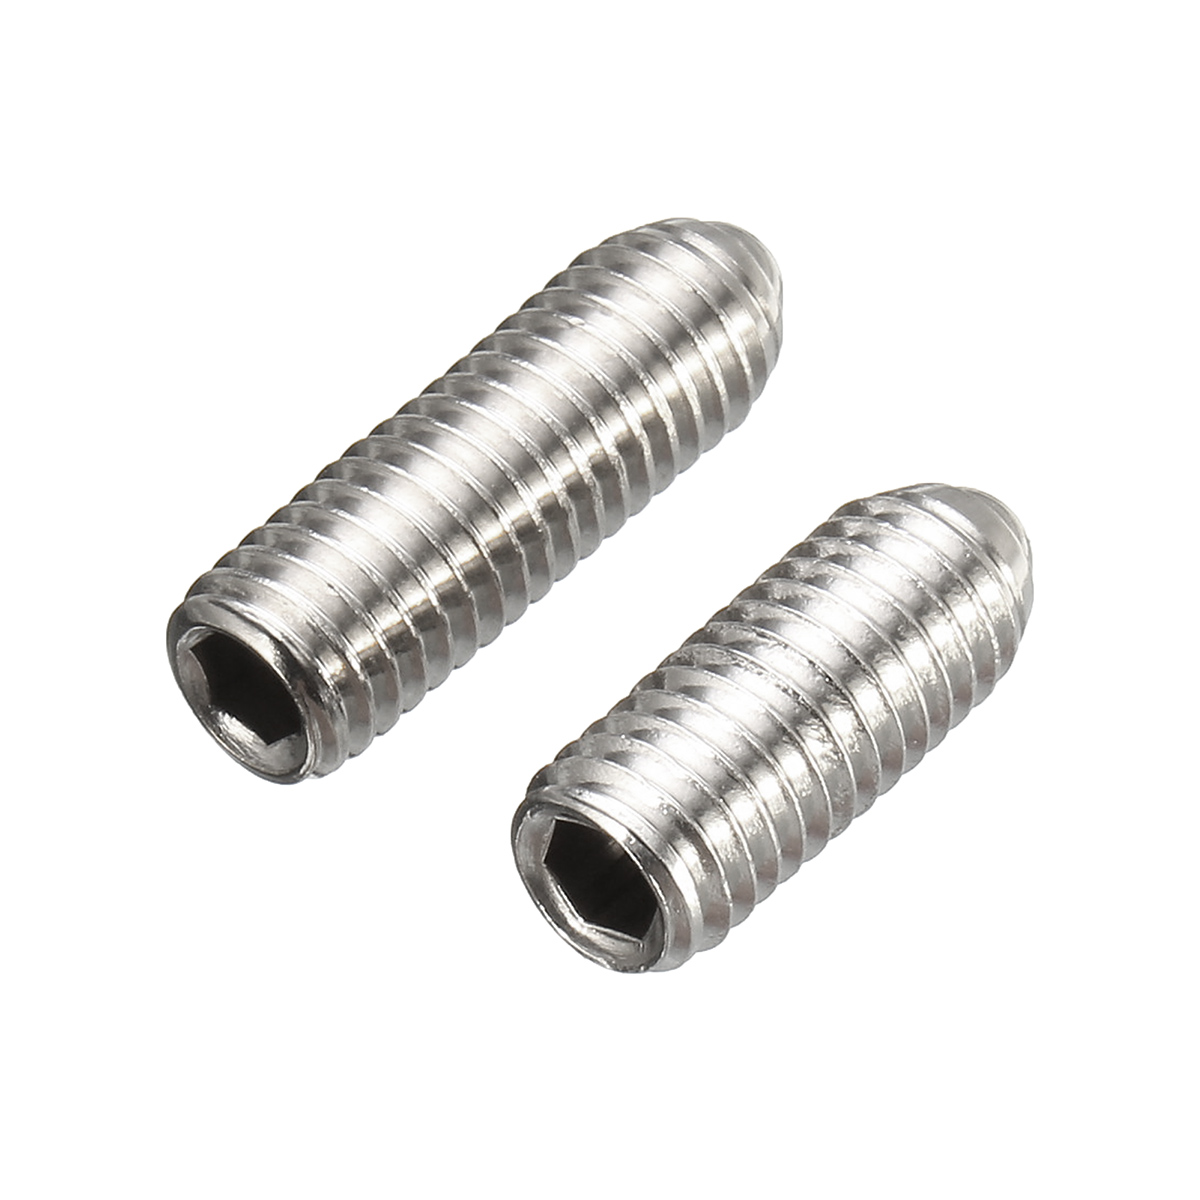 Pcs m stainless steel hex socket cap screws spring head